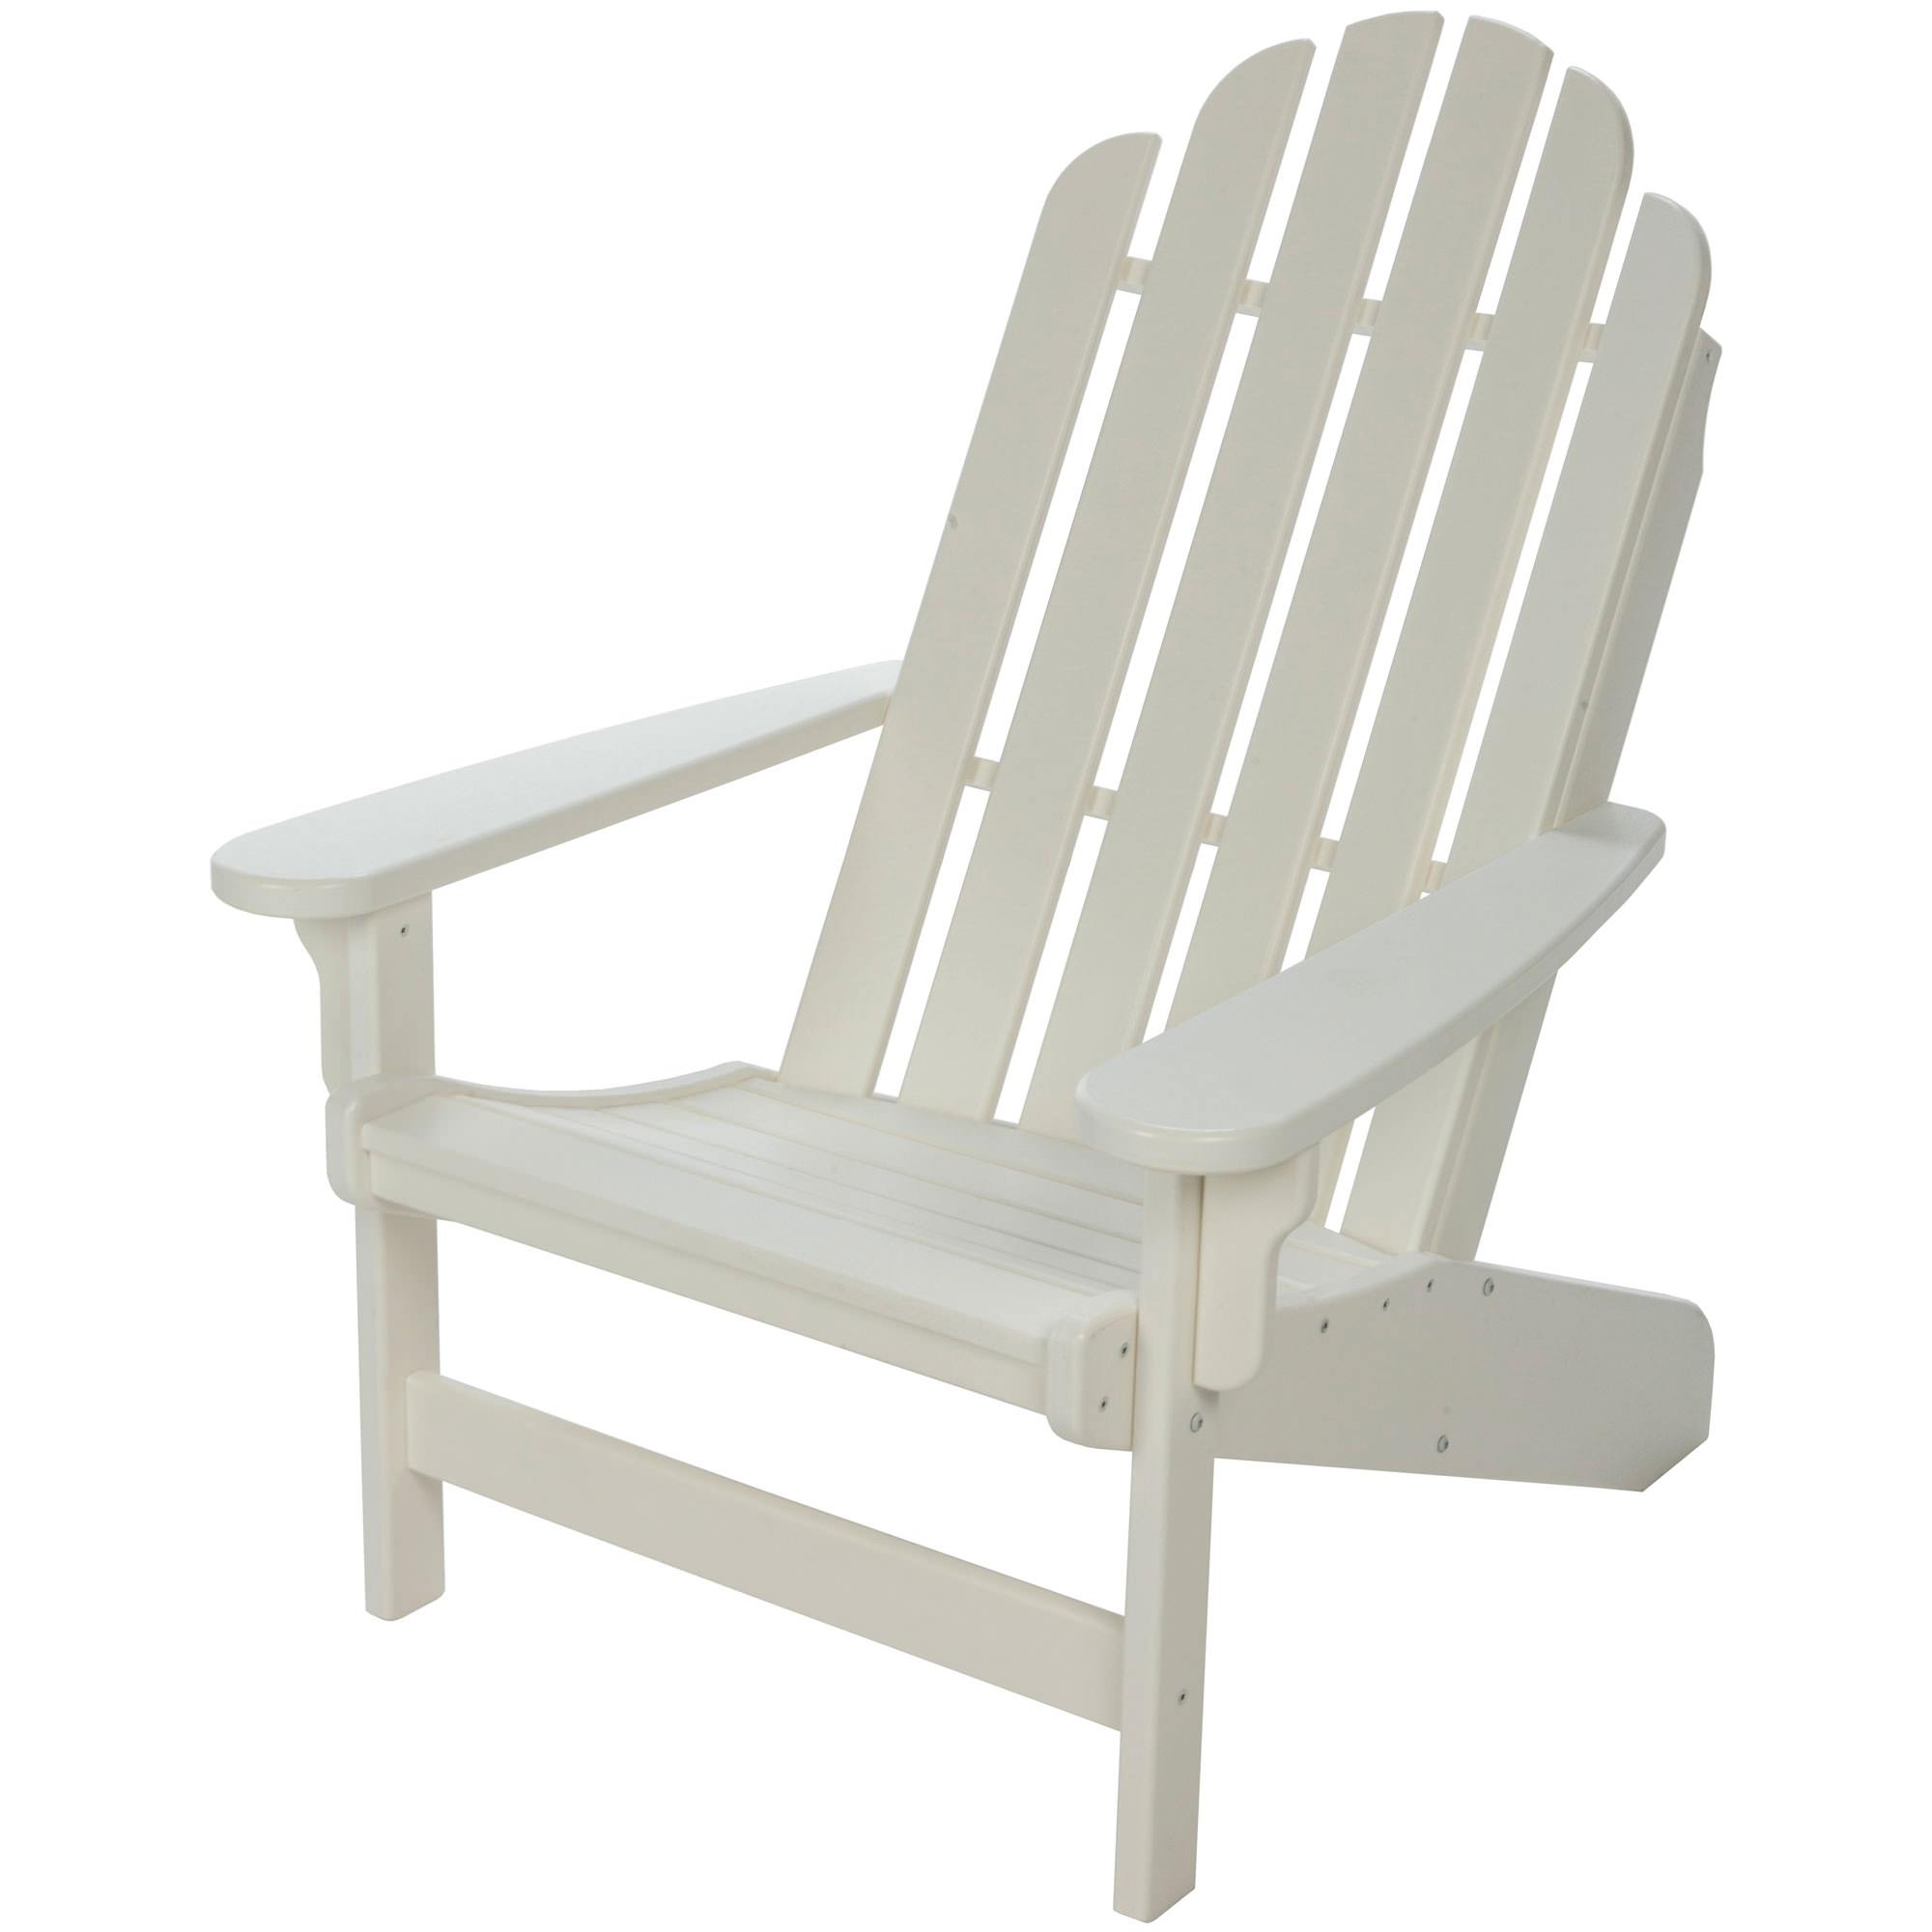 Lifetime Chair Lifetime Essential Adirondack Chair White